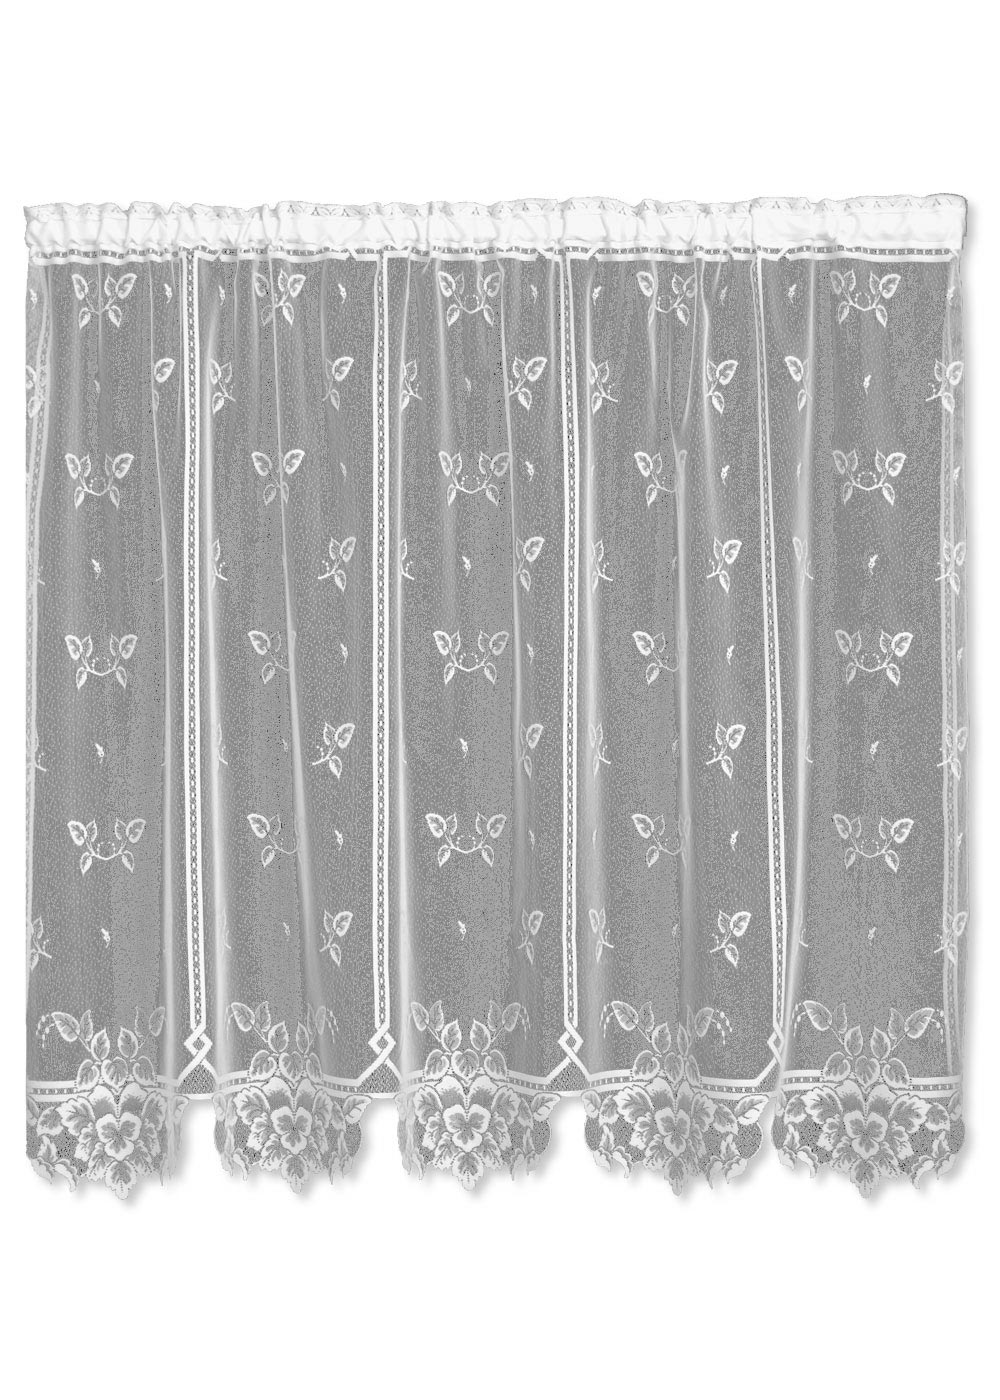 "Heirloom Panel (Sheer) 50x63"" w/ ties (white)"